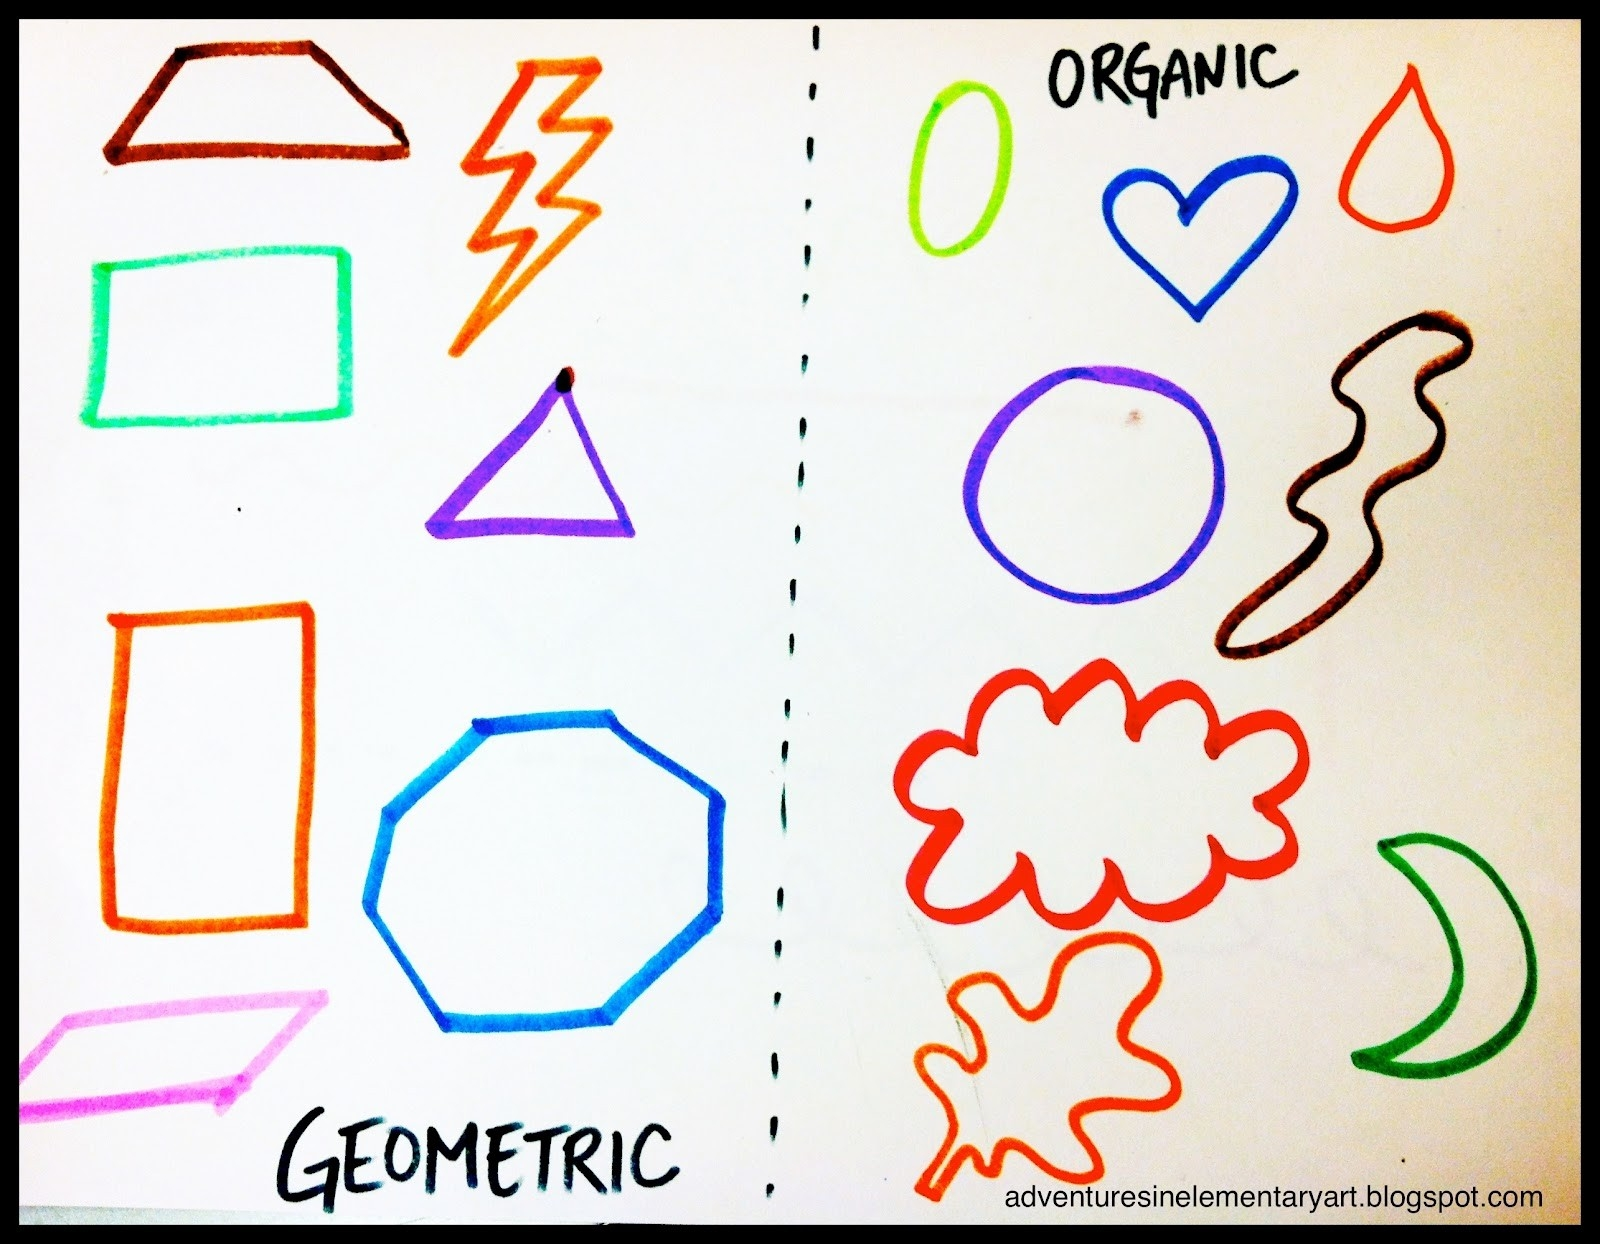 Adventures In Elementary Art!: Concentric Shapes - 2Nd regarding Geometric And Organic Shapes In Art 24950